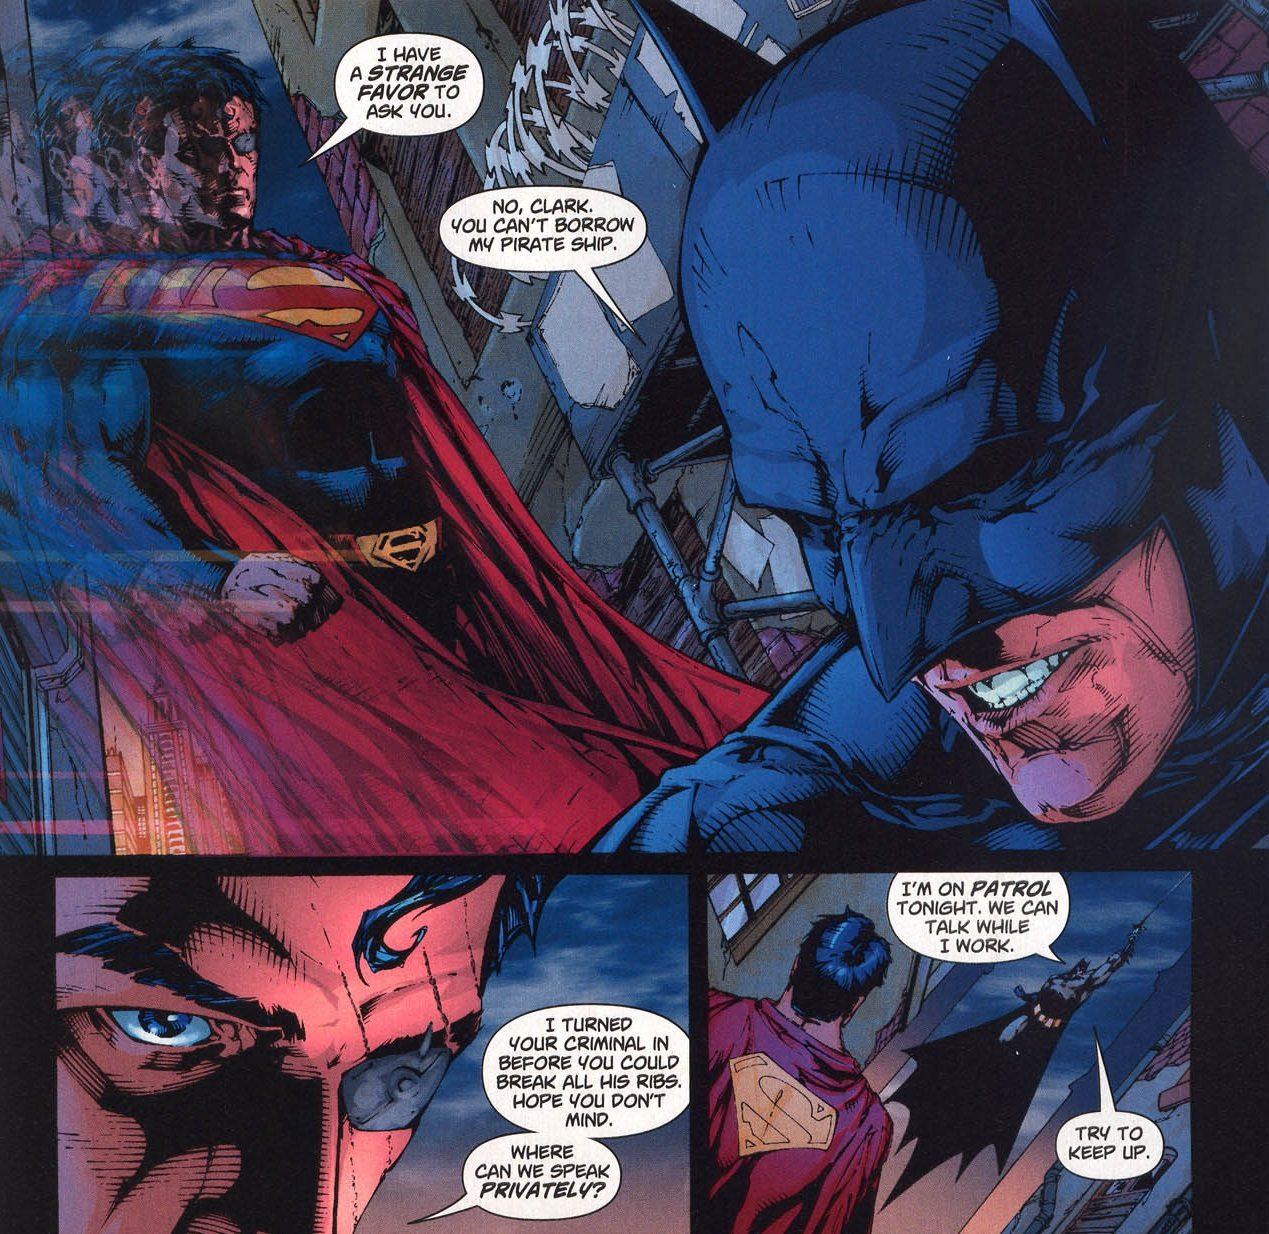 Batman gets the best lines in Superman / Batman  Image: DC Comics